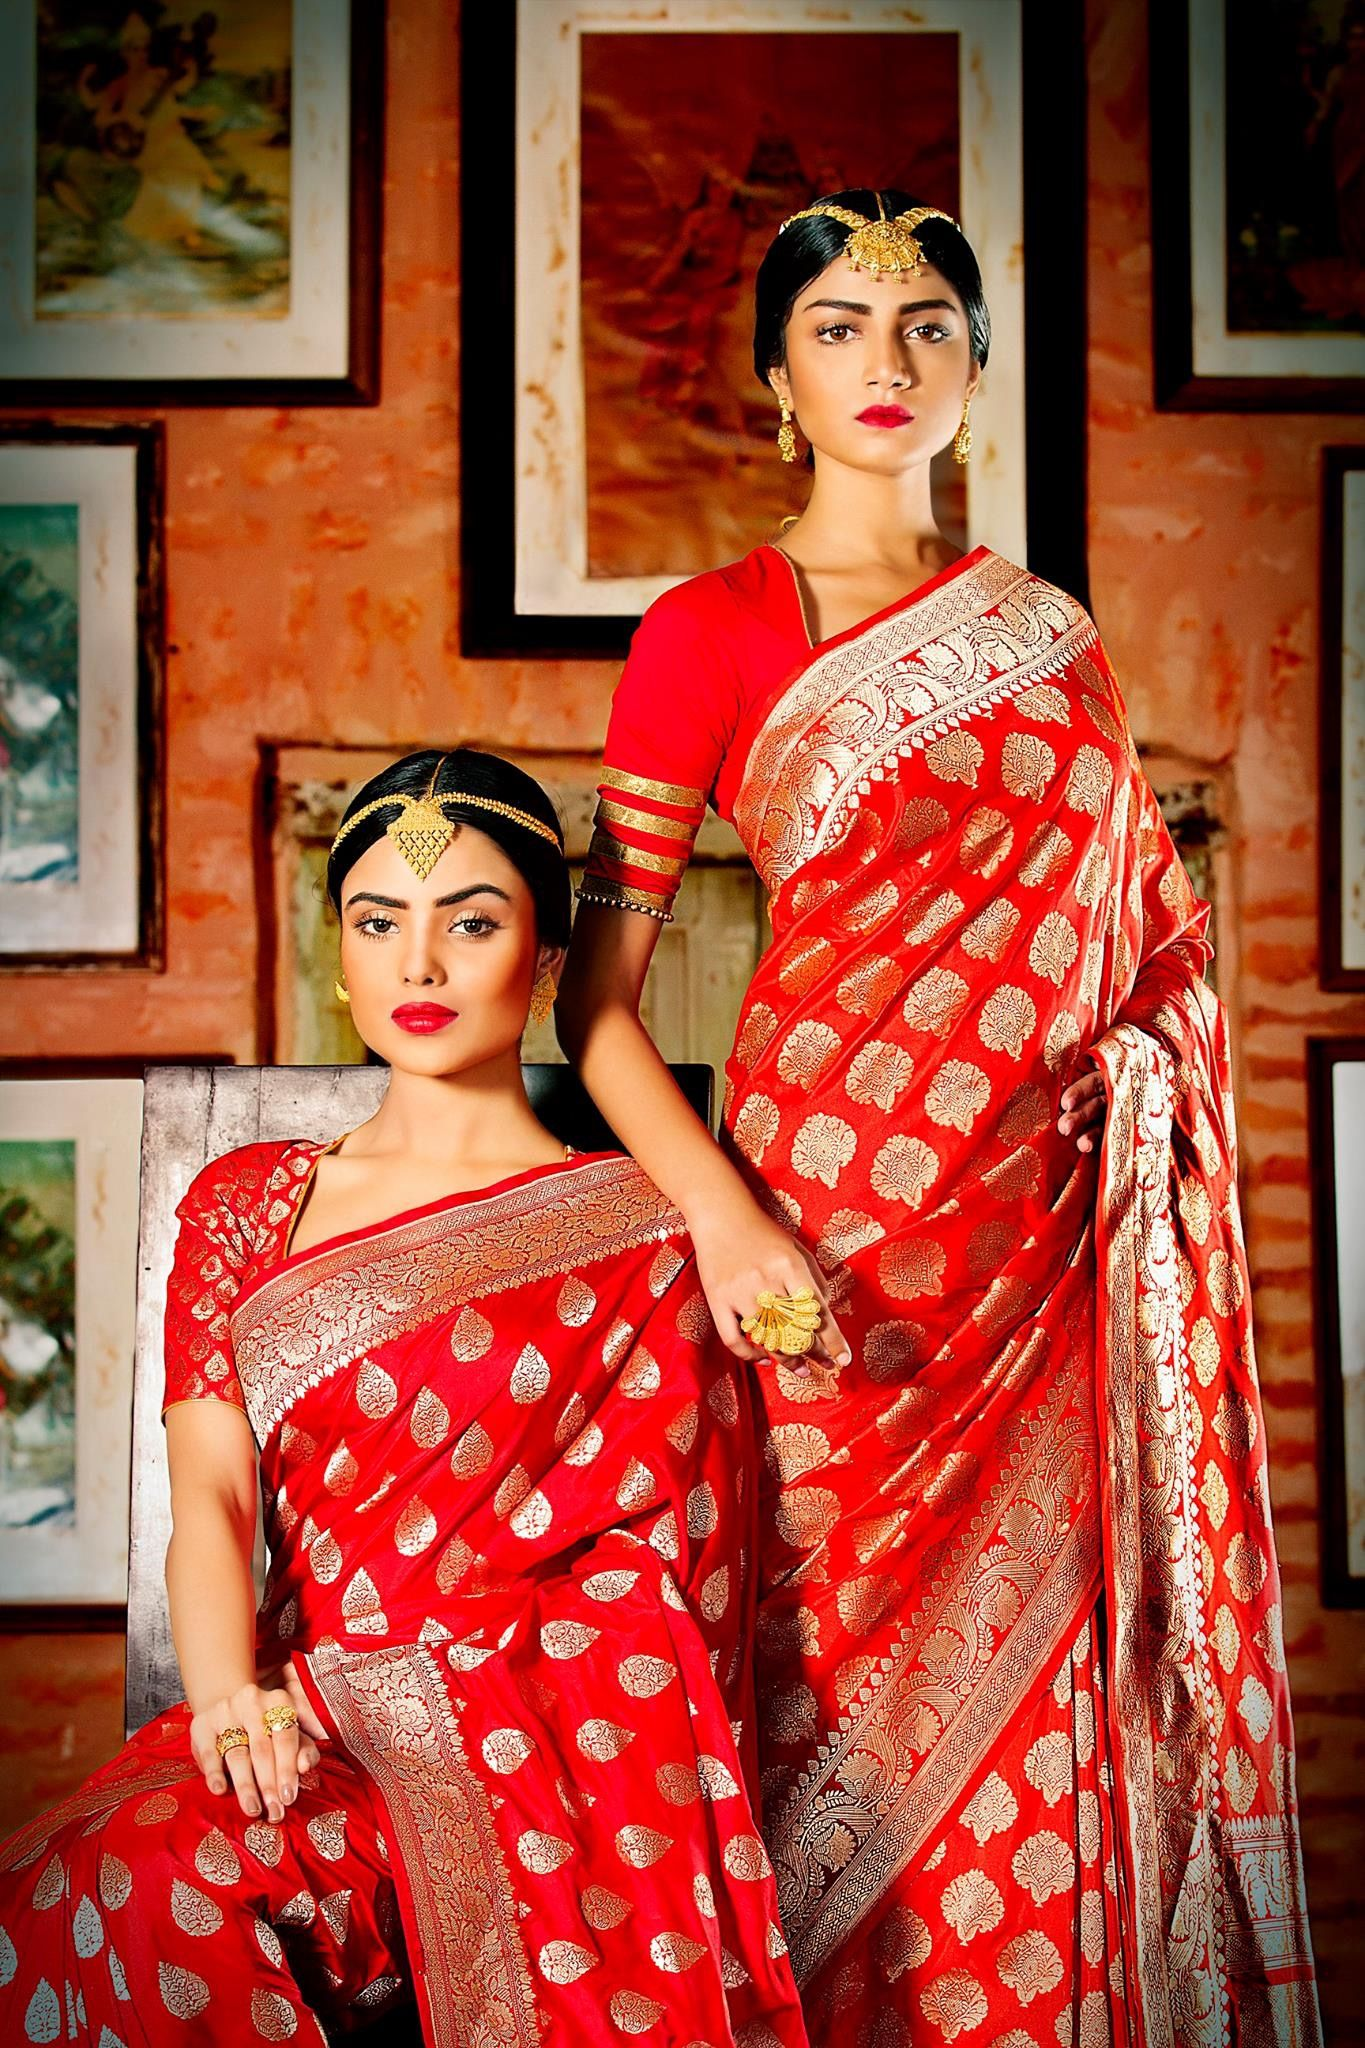 57d03f3fb6606 Top 9 Types of Handloom Sarees Every Indian Diva Must Own! Read More- https